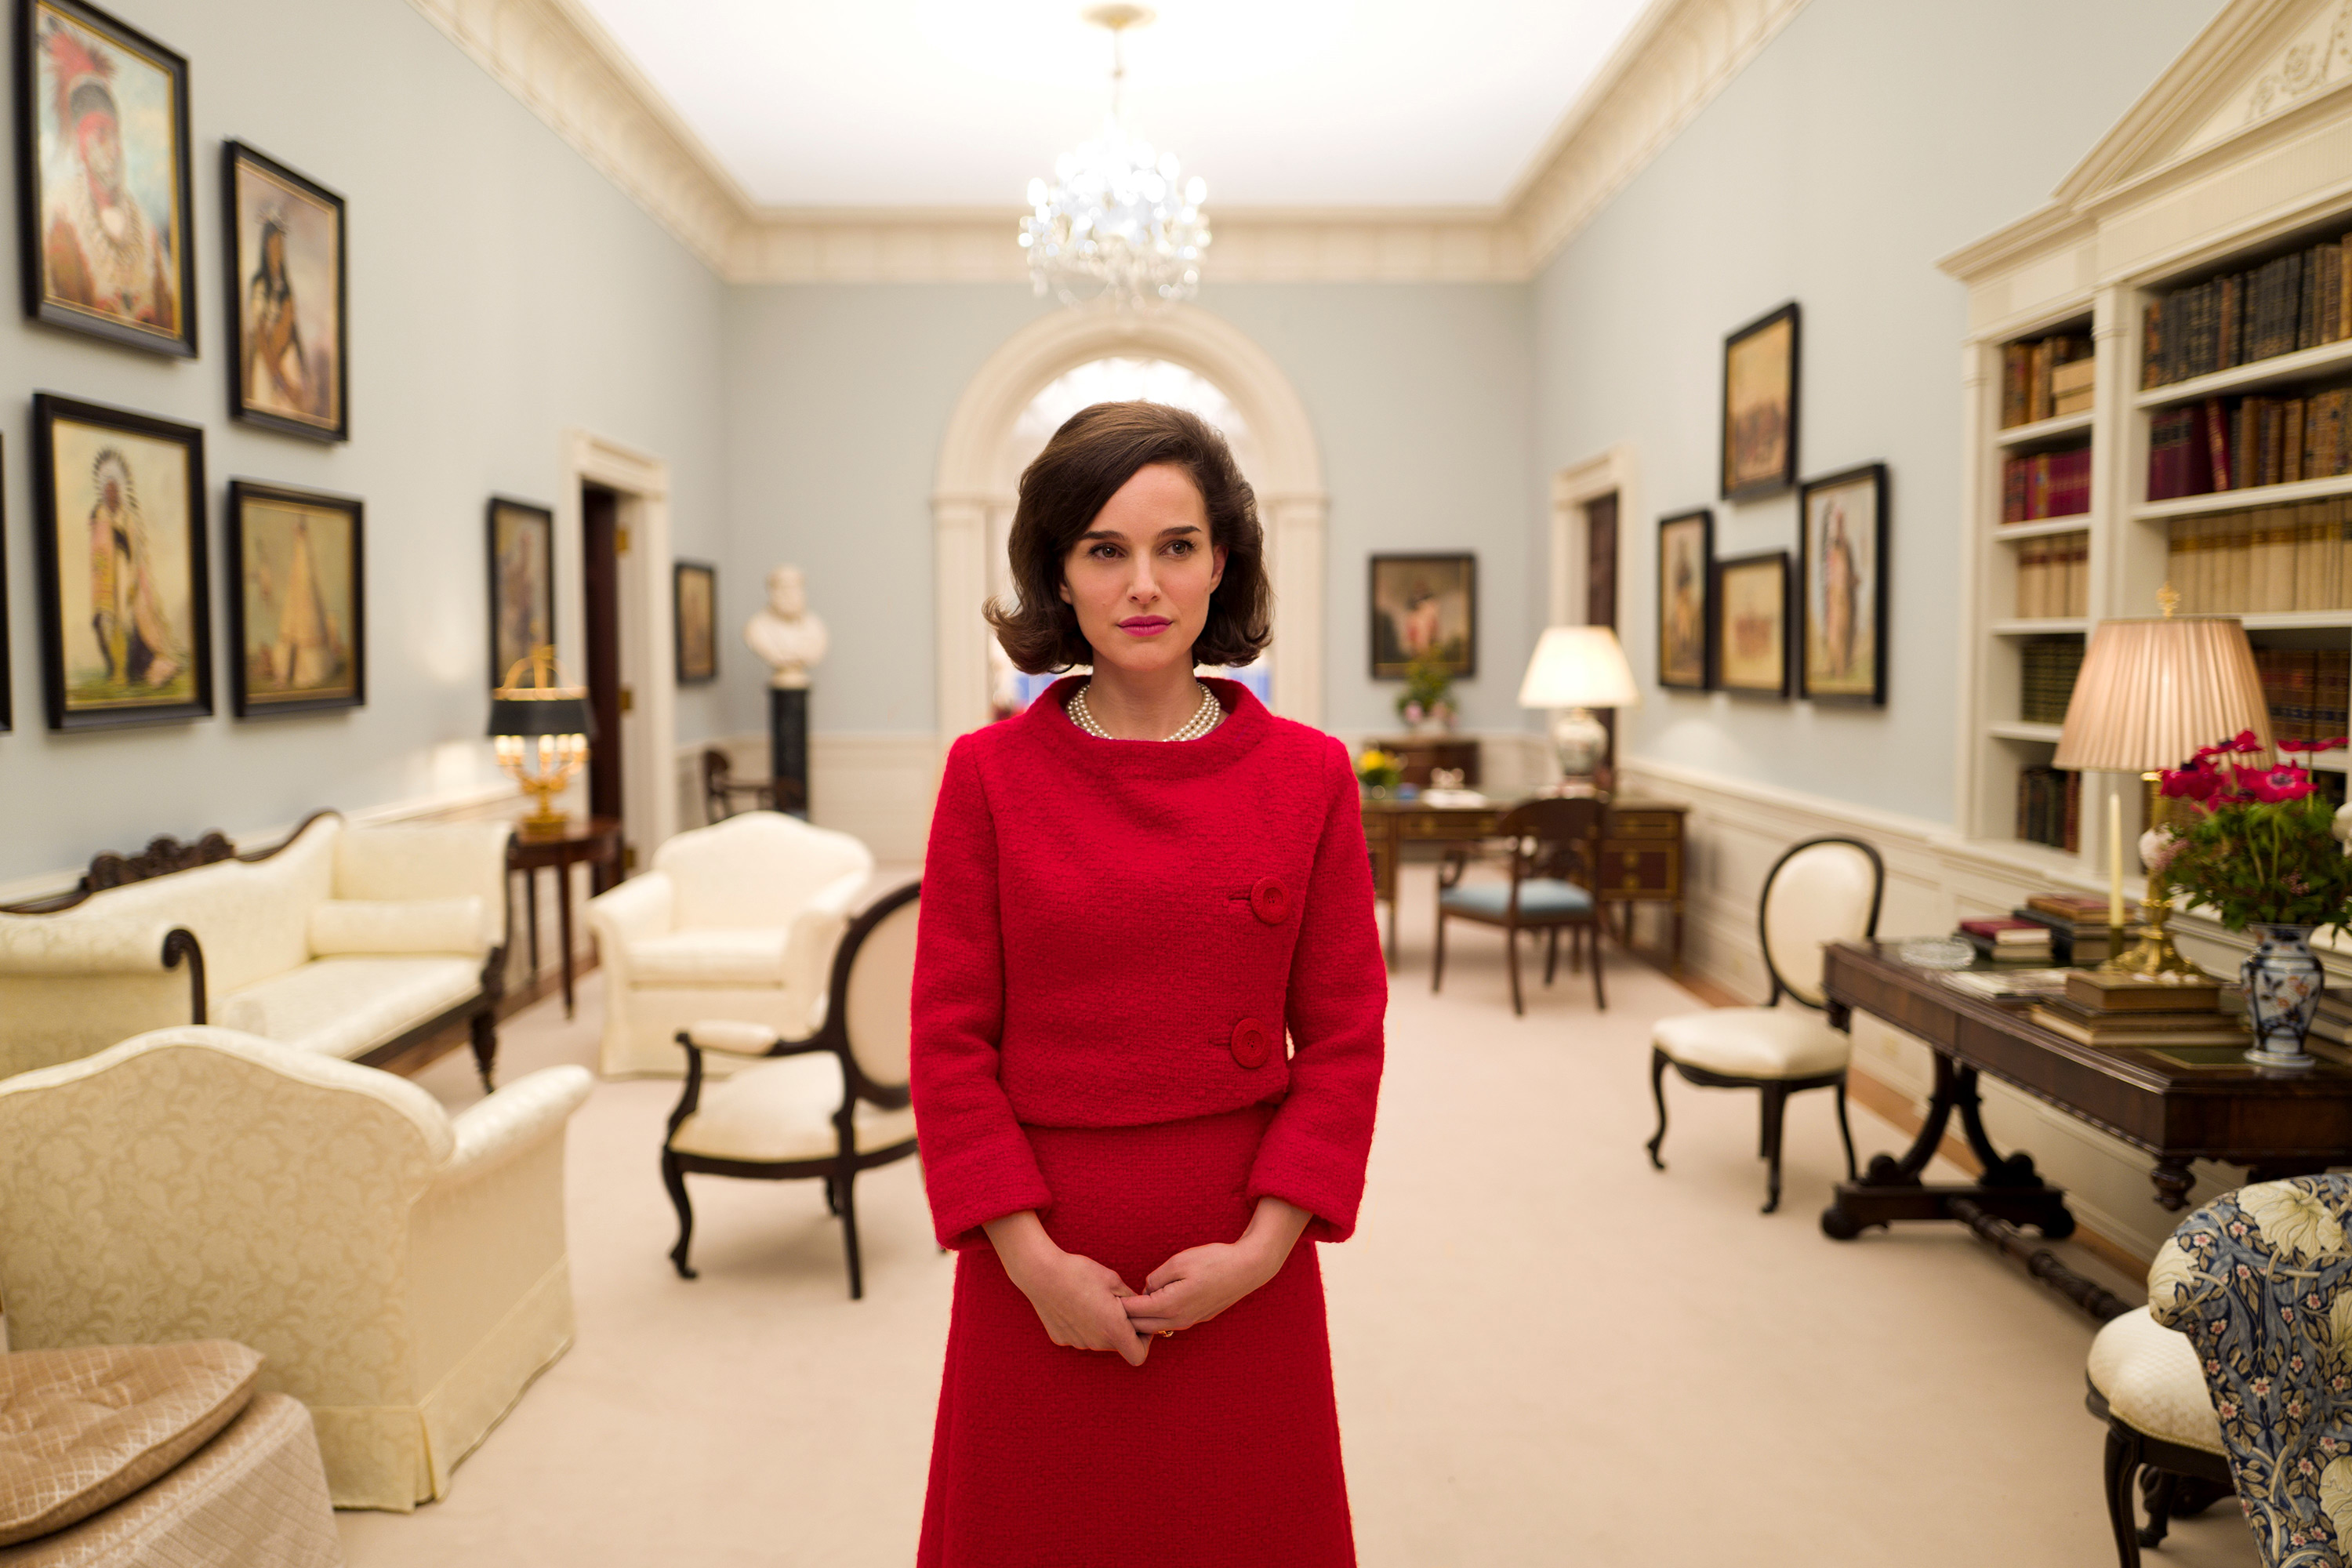 TRAILER: Pablo Larraín's Hollywood Debut 'Jackie' Will Bring You to Tears